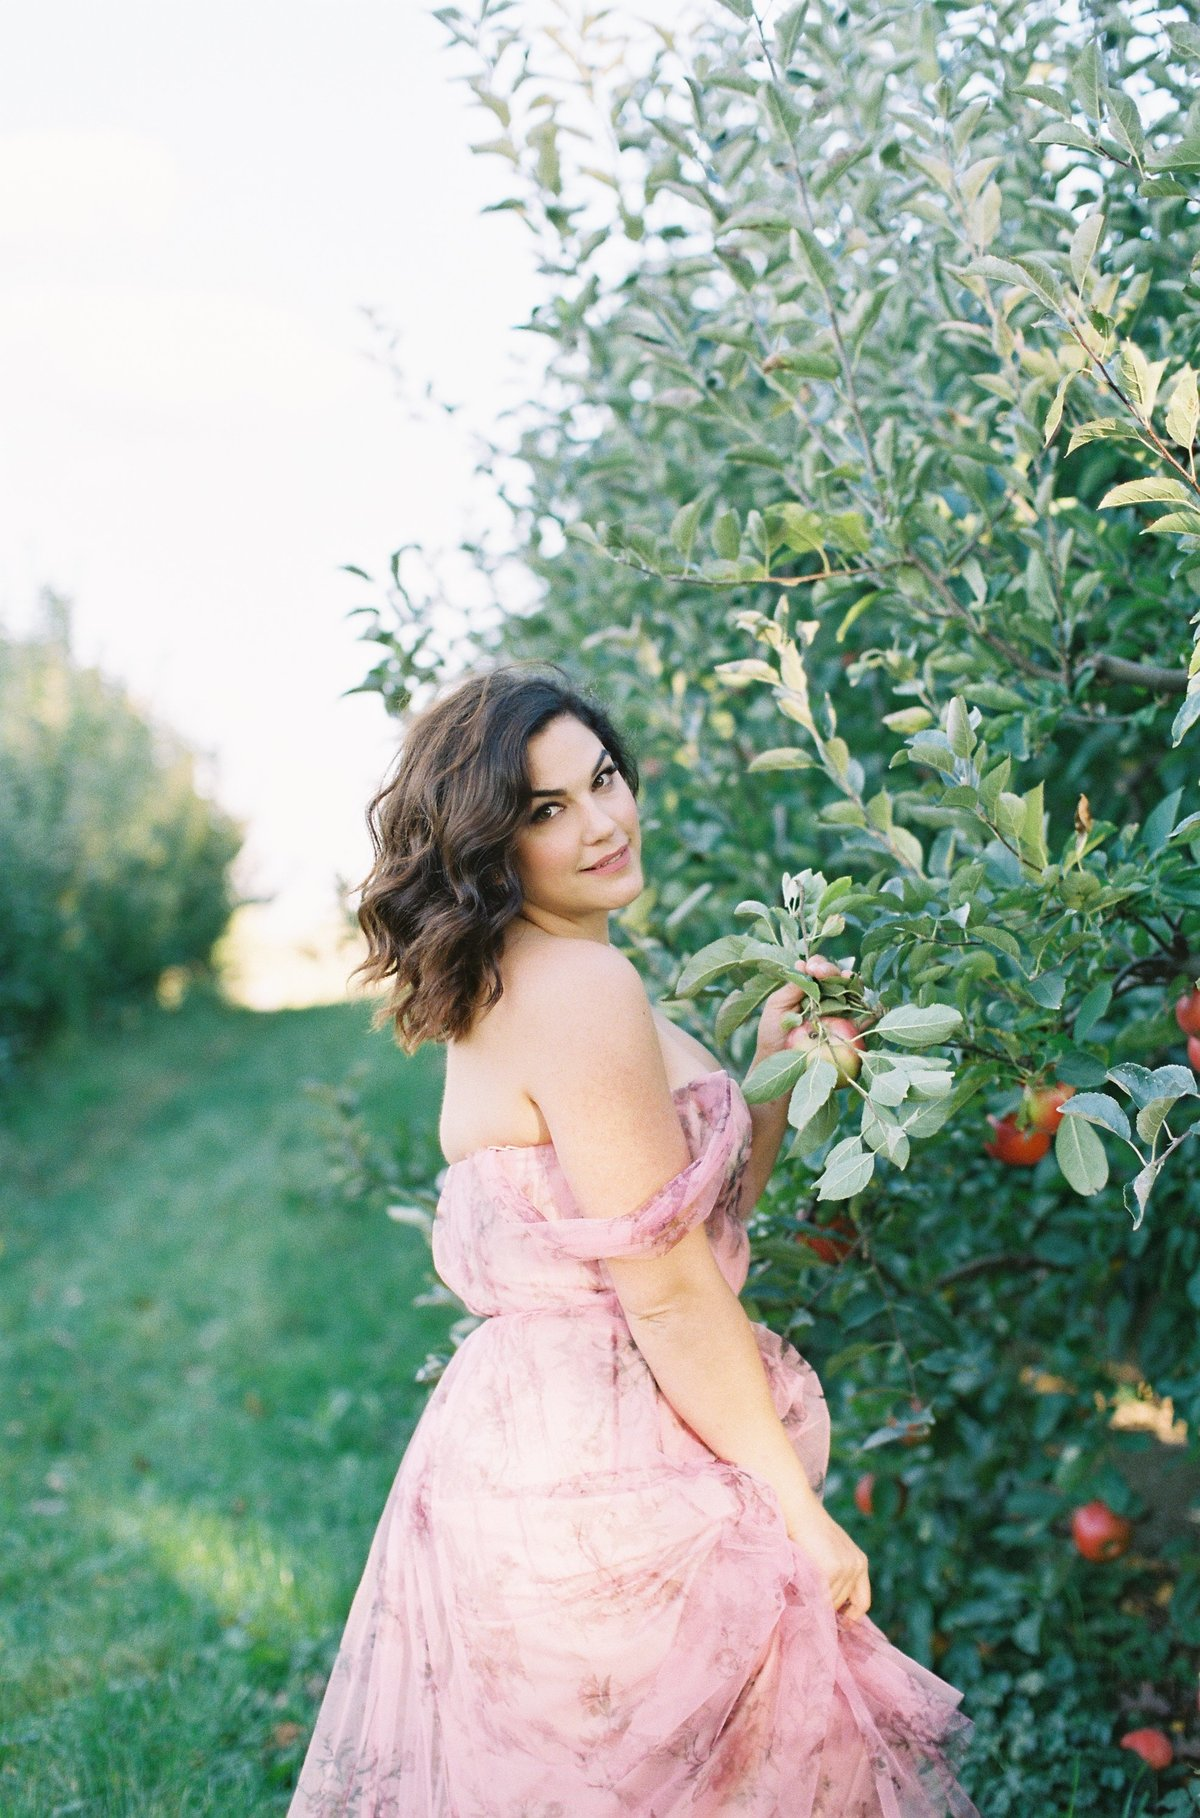 A dark haired woman in a gauzy pink dress posing in an apple orchard Marchesa Notte Soergel's Orchard  | Pittsburgh Wedding Photographer | Anna Laero